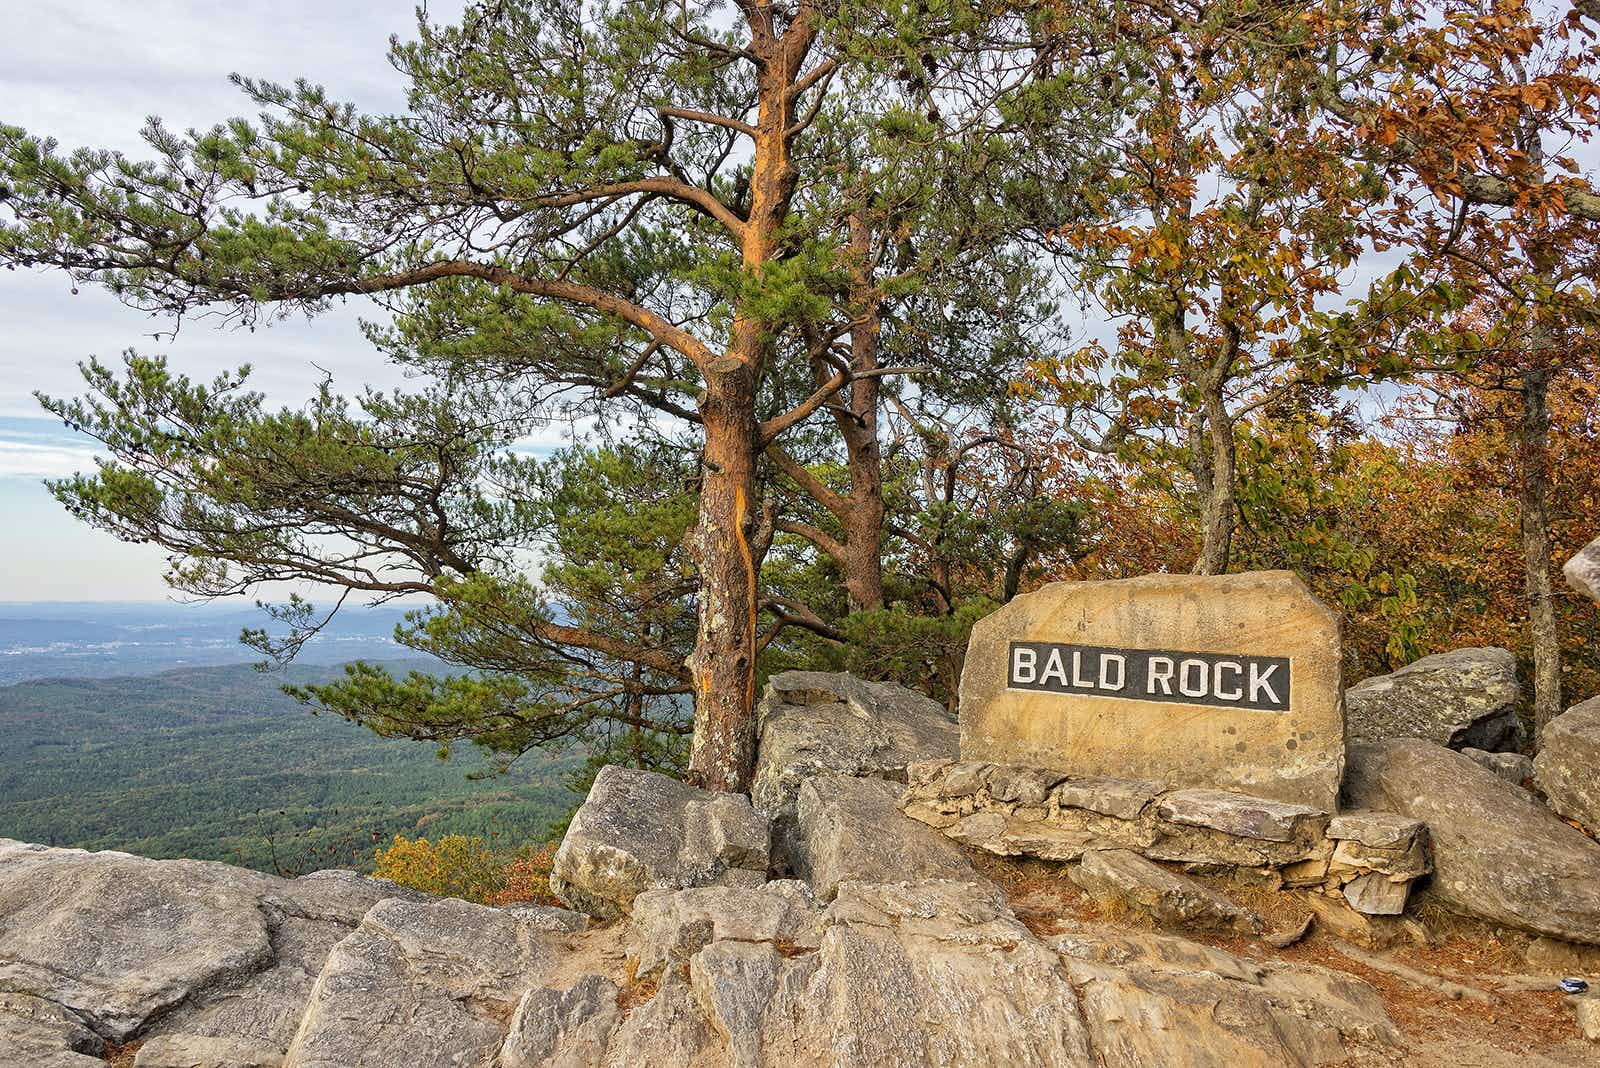 Take a hike: 5 natural escapes in Alabama - Lonely Planet Cheaha State Park Hiking Trail Map on chehaw park campground map, alabama state map, mt. cheaha map, forest park hiking trails map, mount cheaha trail map, cheaha mountain hiking trail map, blauvelt state park trail map,